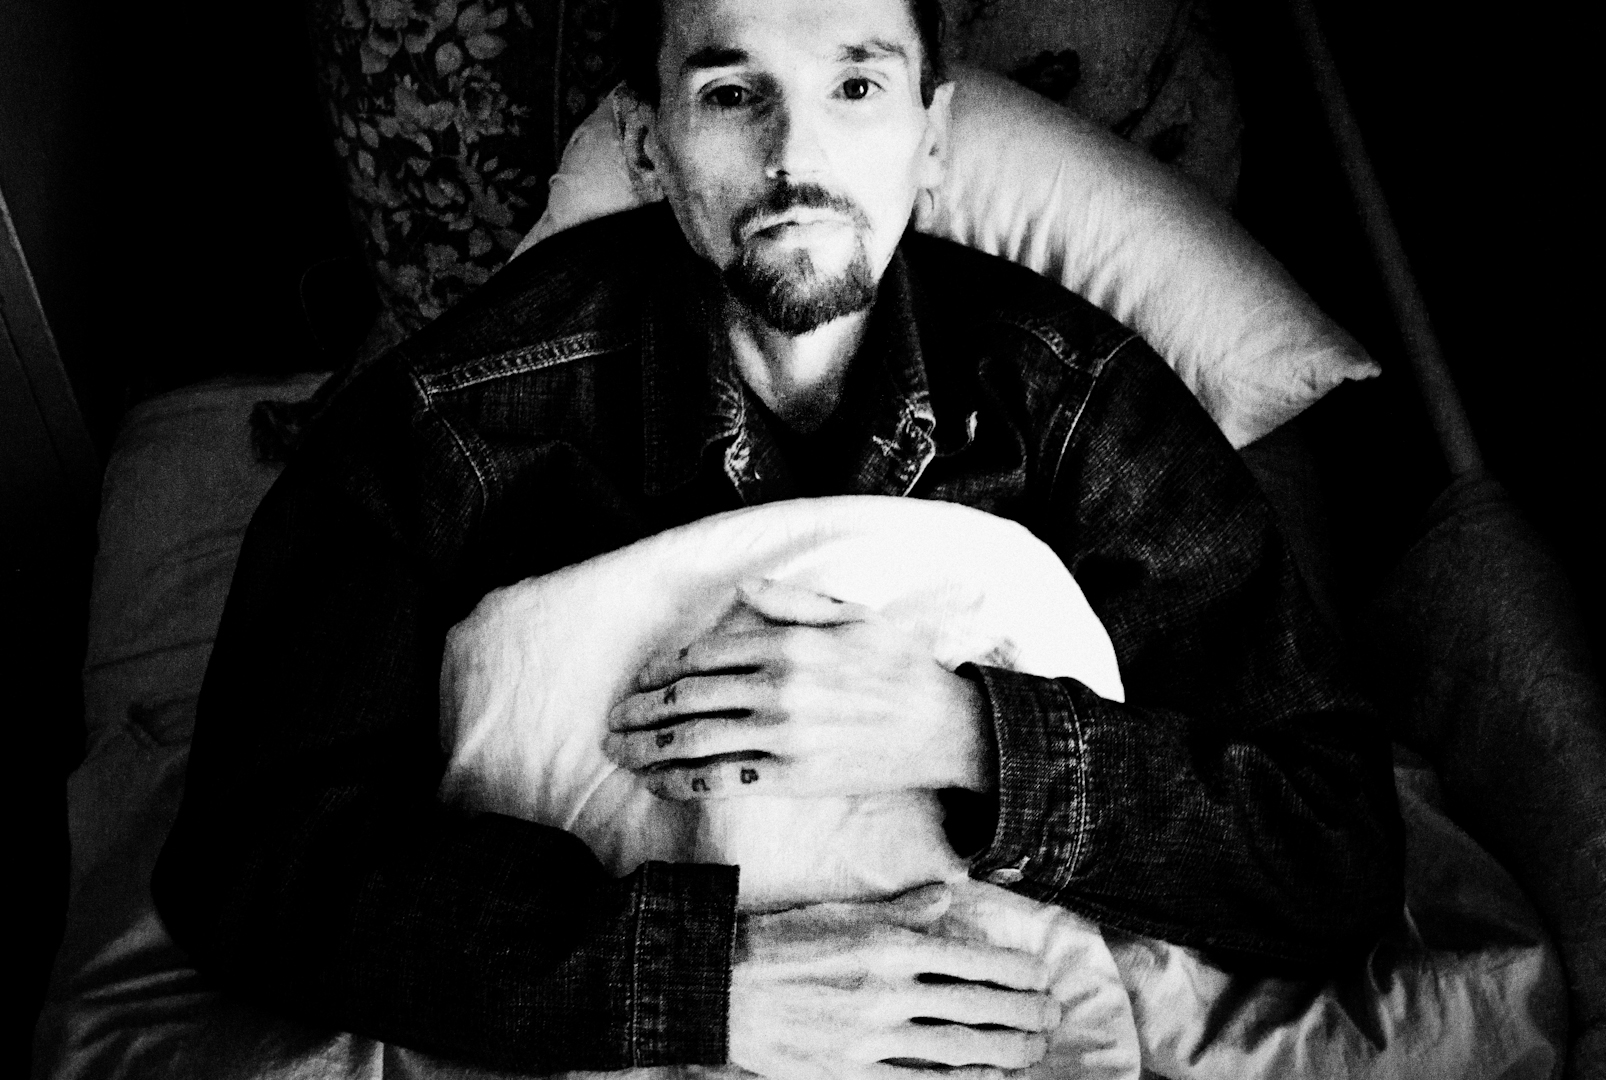 misha friedman tuberculosis in the former soviet union burn kolya 31 who is living hiv and has tuberculosis has a poor